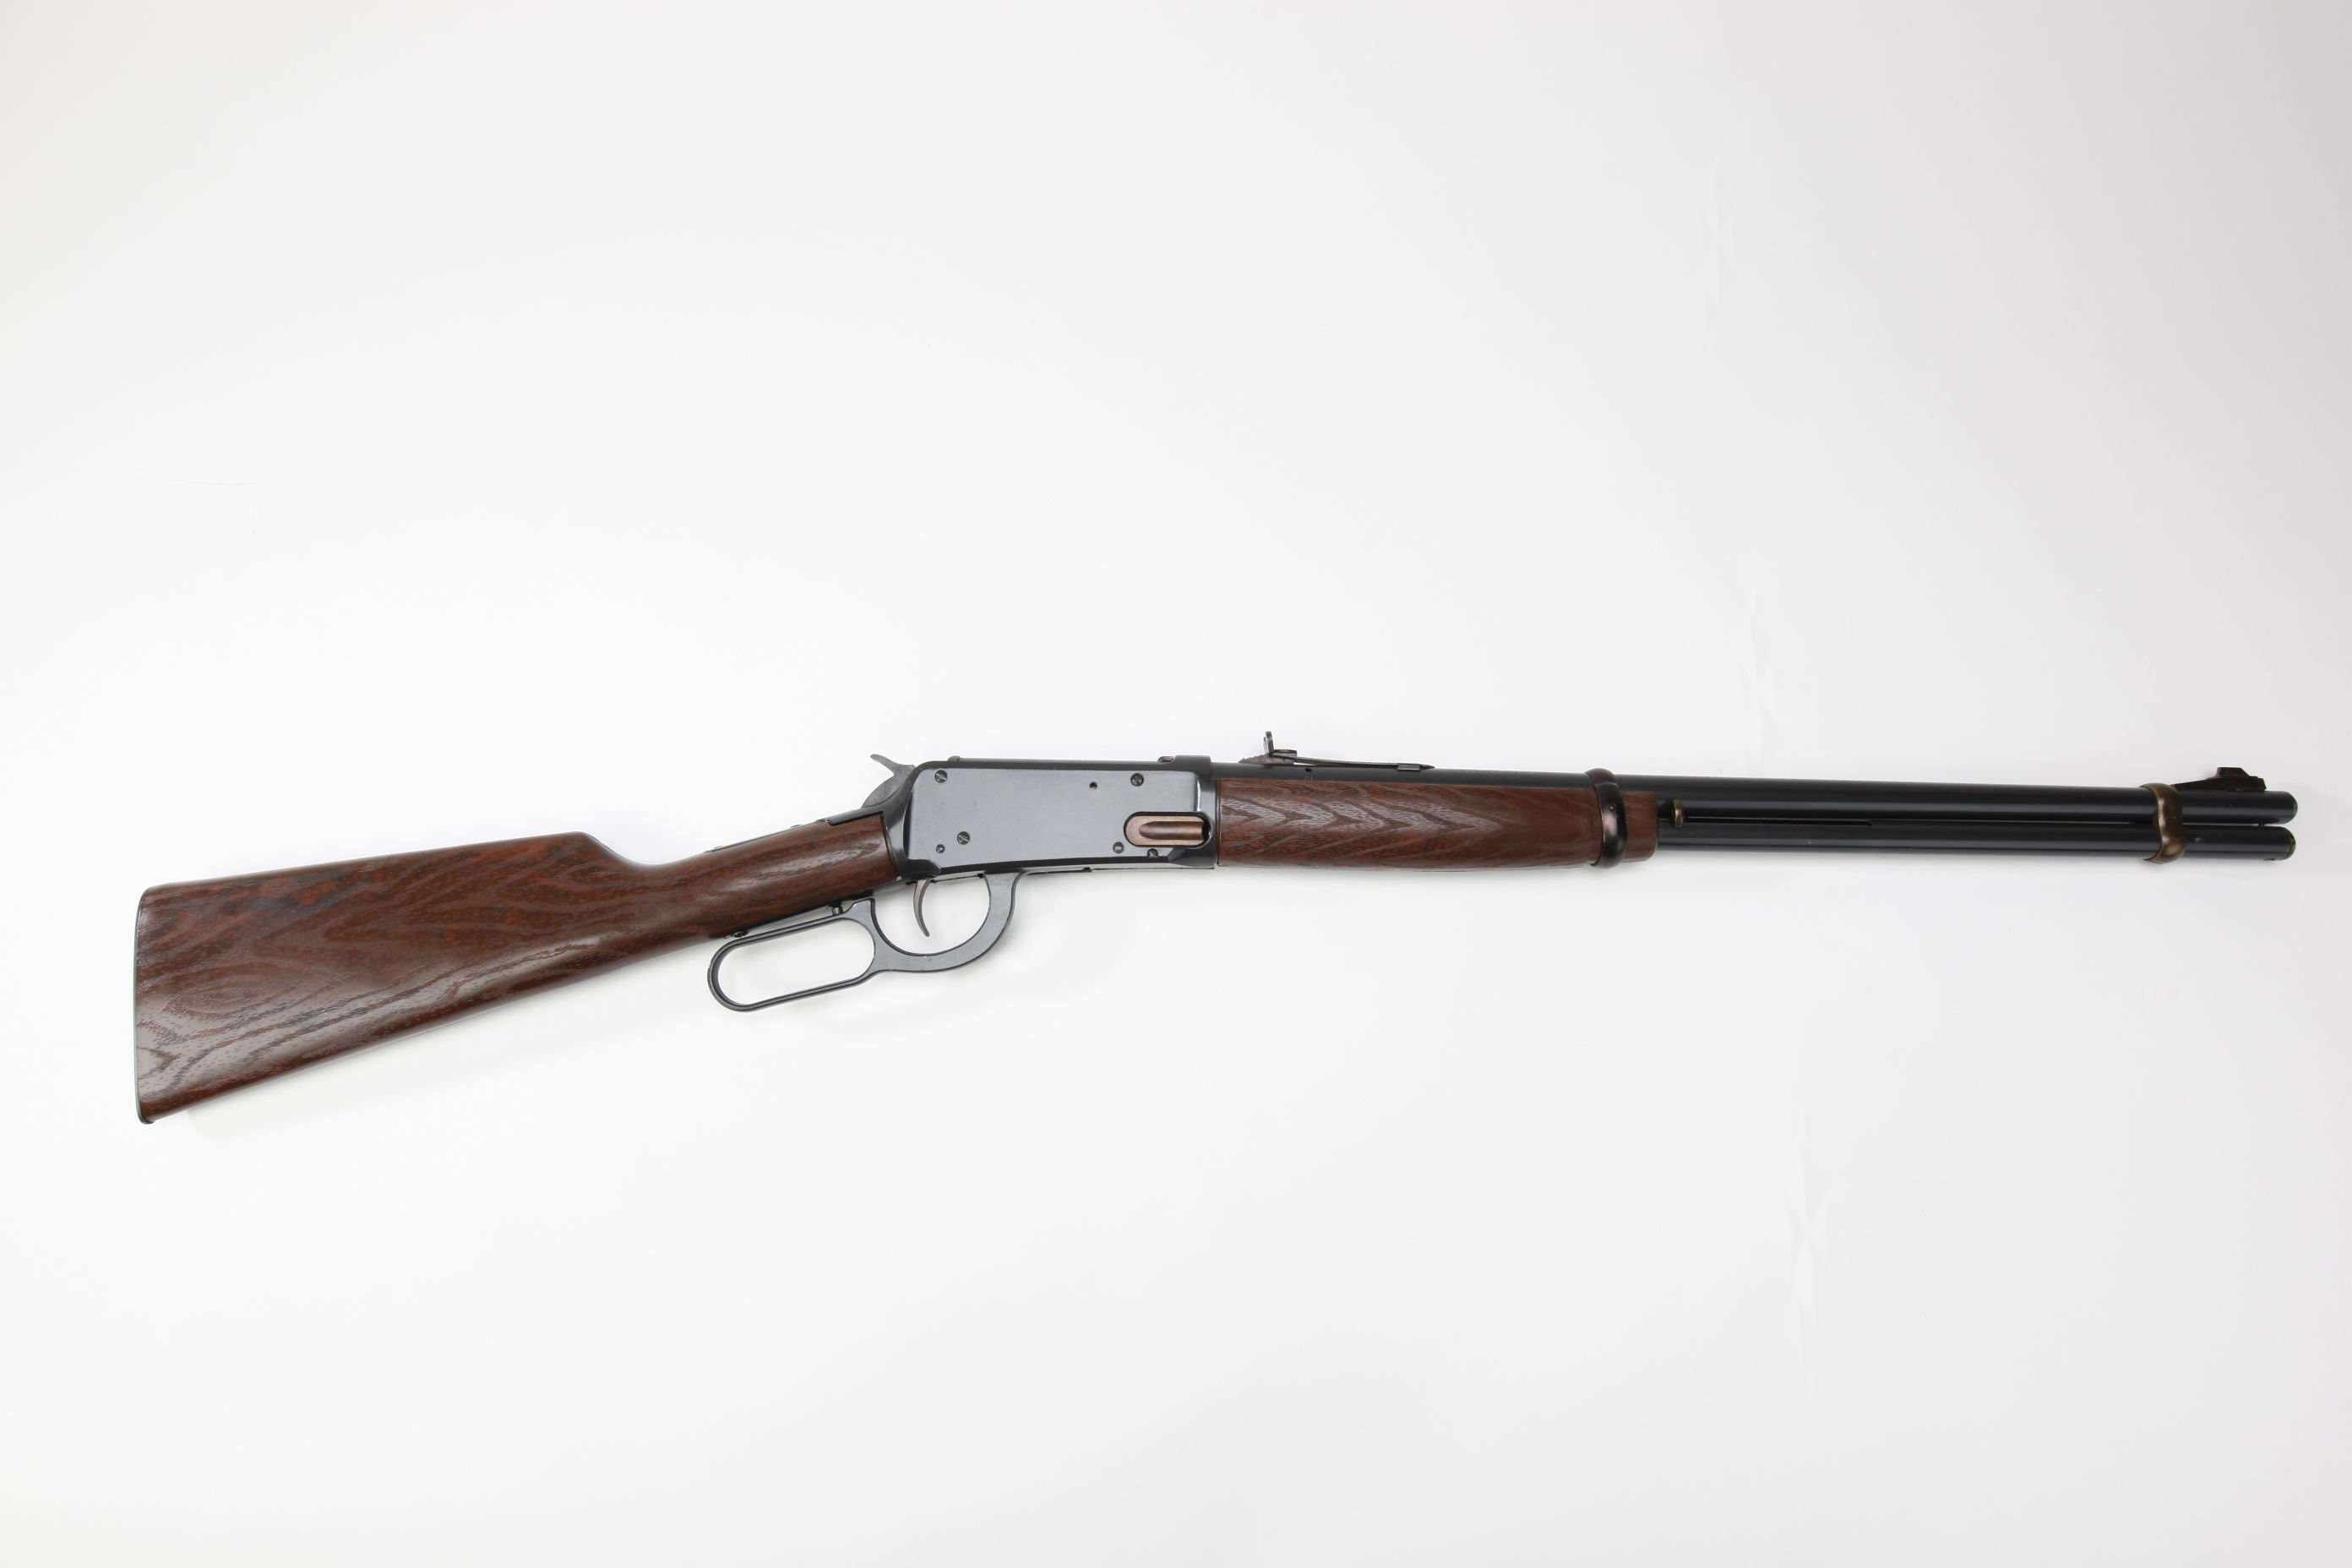 Daisy Model 1894 Lever Matic Repeating Air Rifle